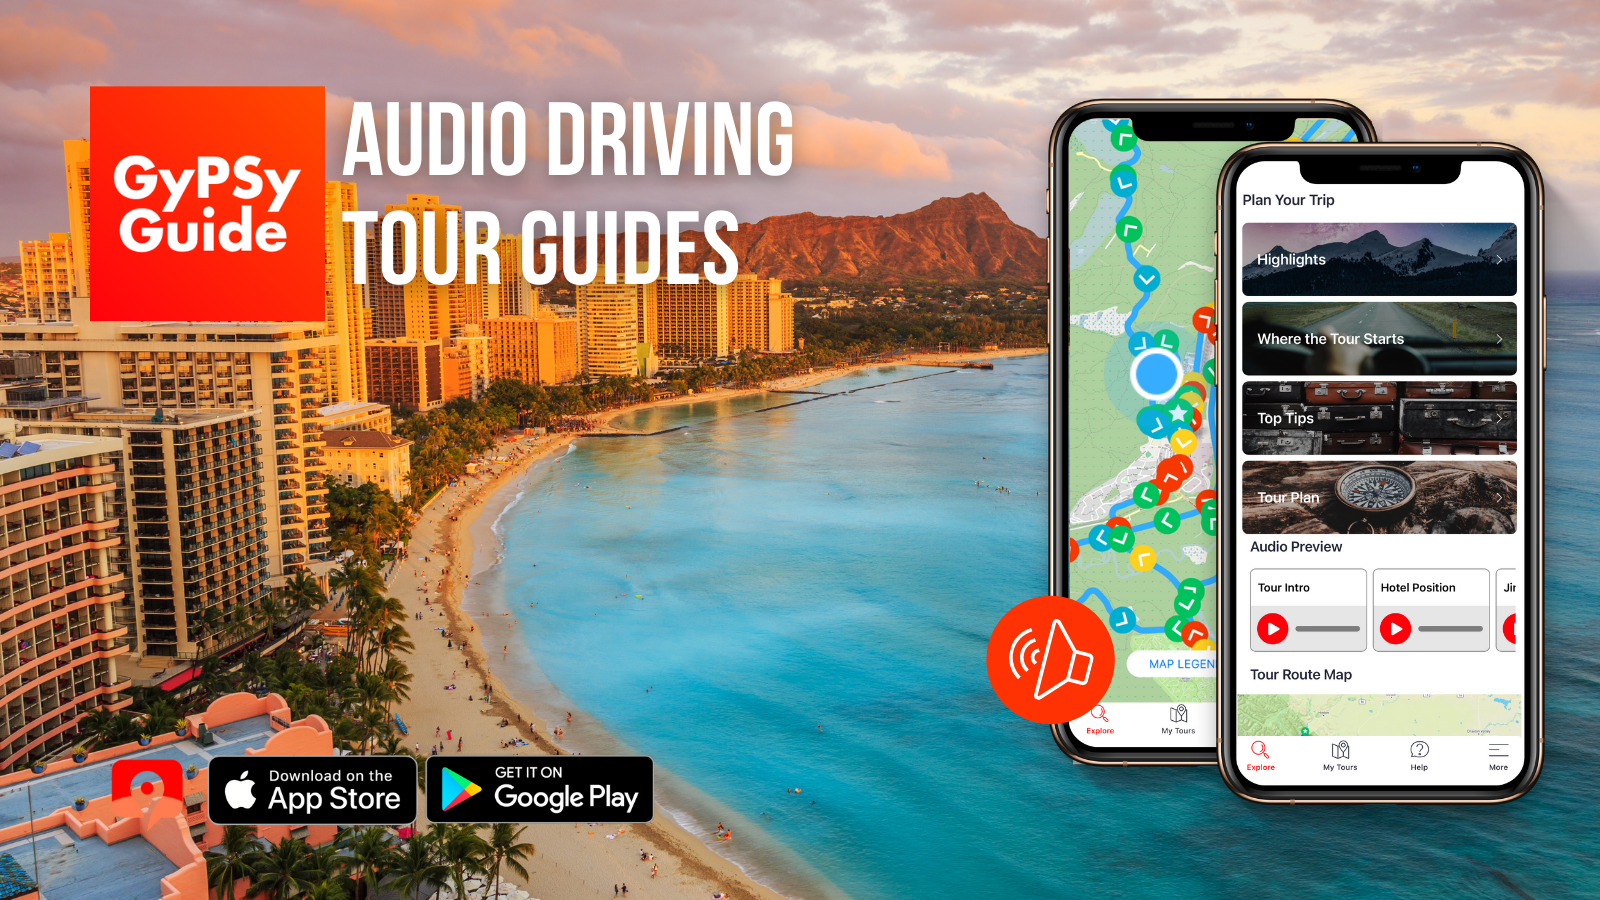 11Oahu with GyPSy Guide Driving Tour App